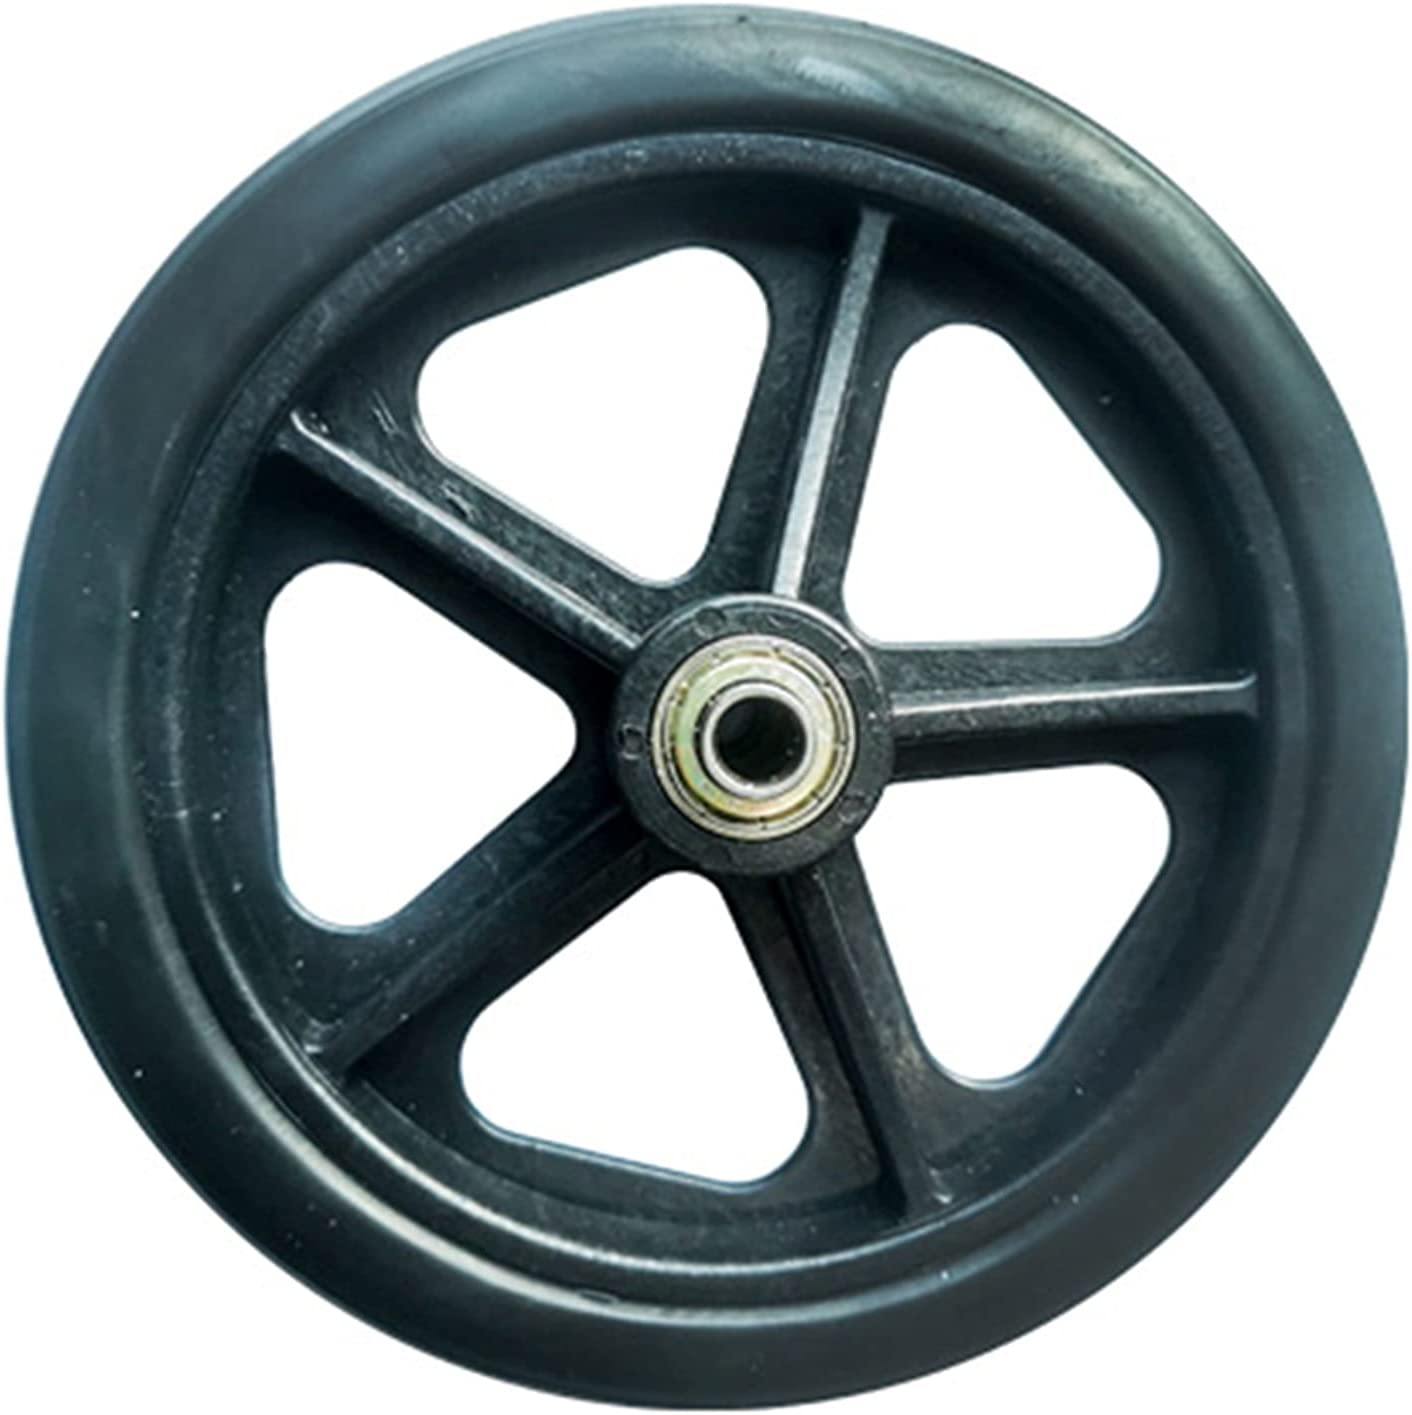 Wheelchair Year-end annual account wheels 1 Accessories Inc 6-8 Tires Front Challenge the lowest price of Japan ☆